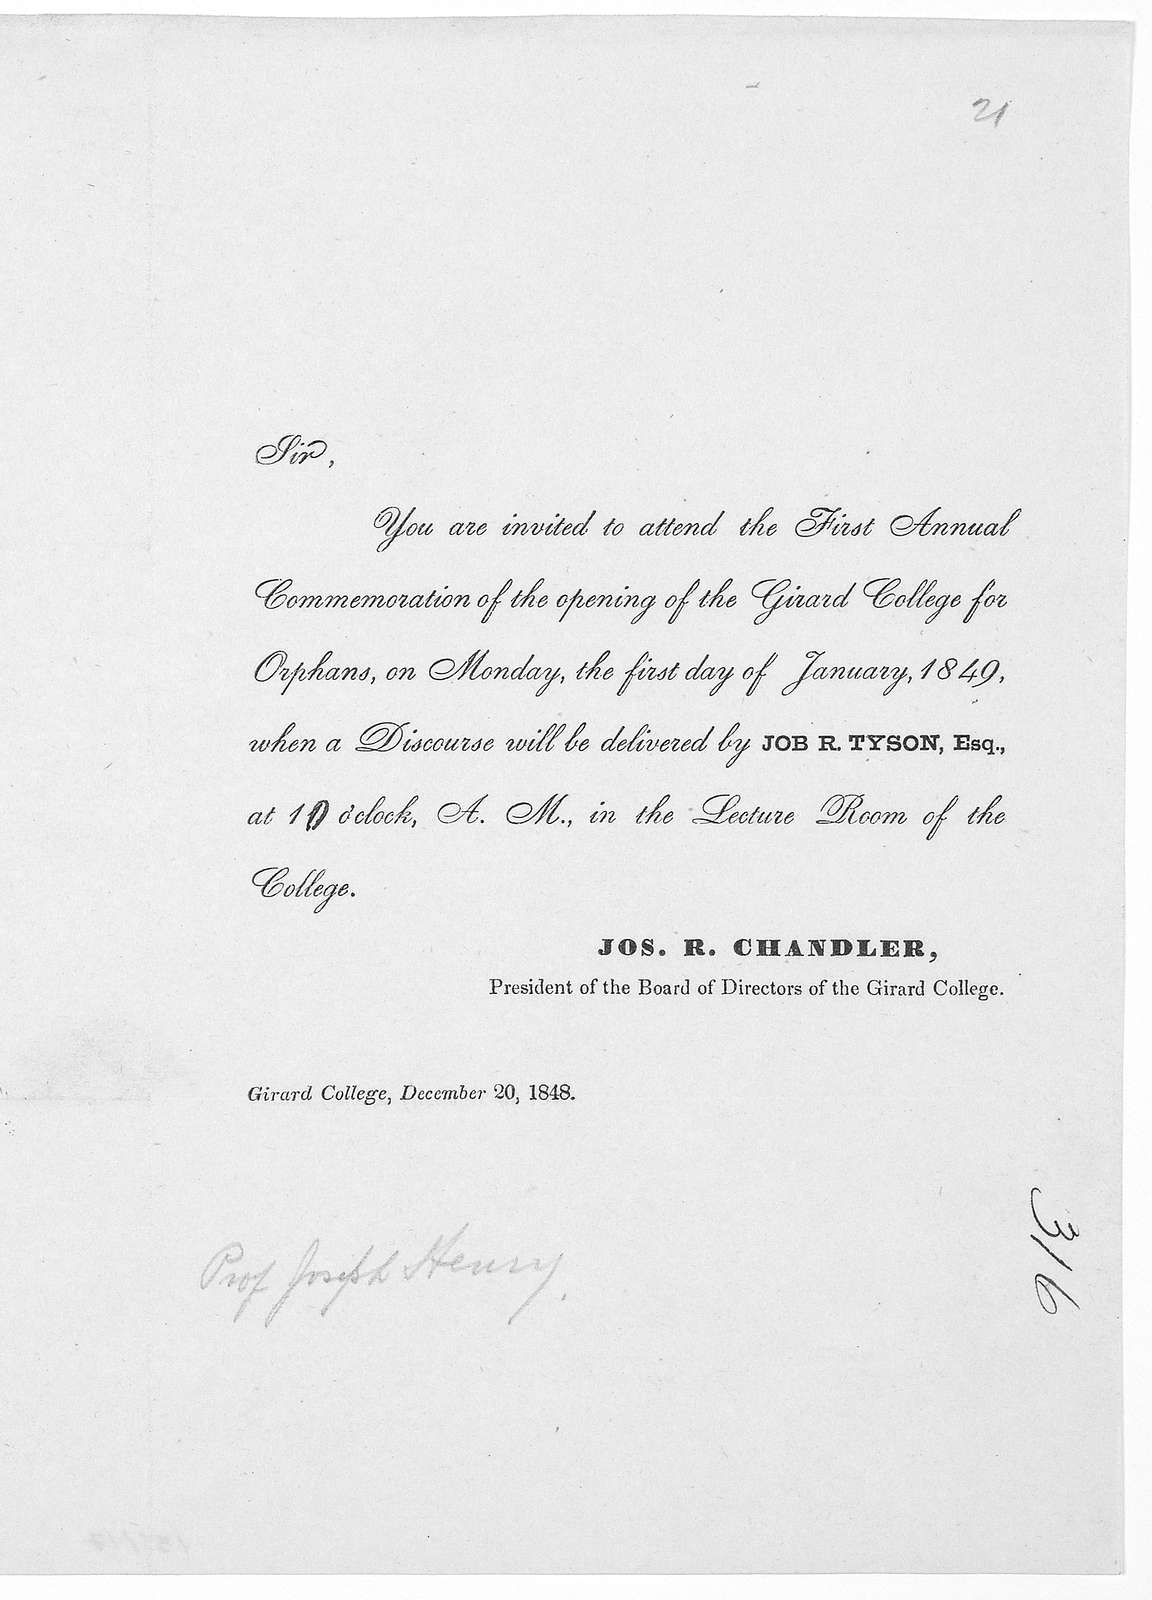 Sir. You are invited to attend the First annual commemoration of the opening of the Girard College for orphans, on Monday, the first day of January, 1849, when a discourse will be delivered by Job R. Tyson, Esq., at 10 o'clock, A. M., in the lec